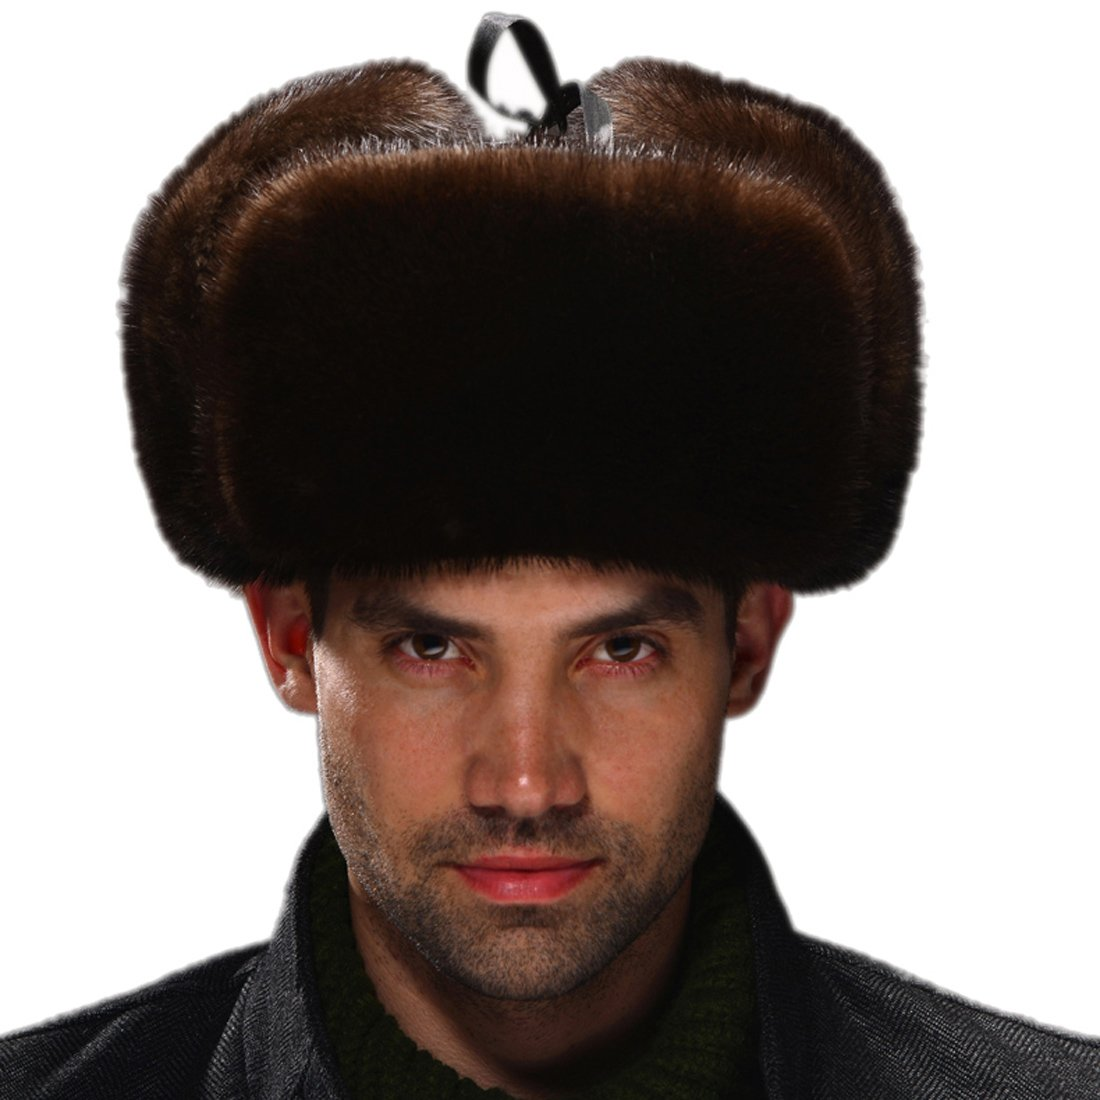 URSFUR Men's Otter Fur & Leather Russian Ushanka Hats (One Size, Coffee)